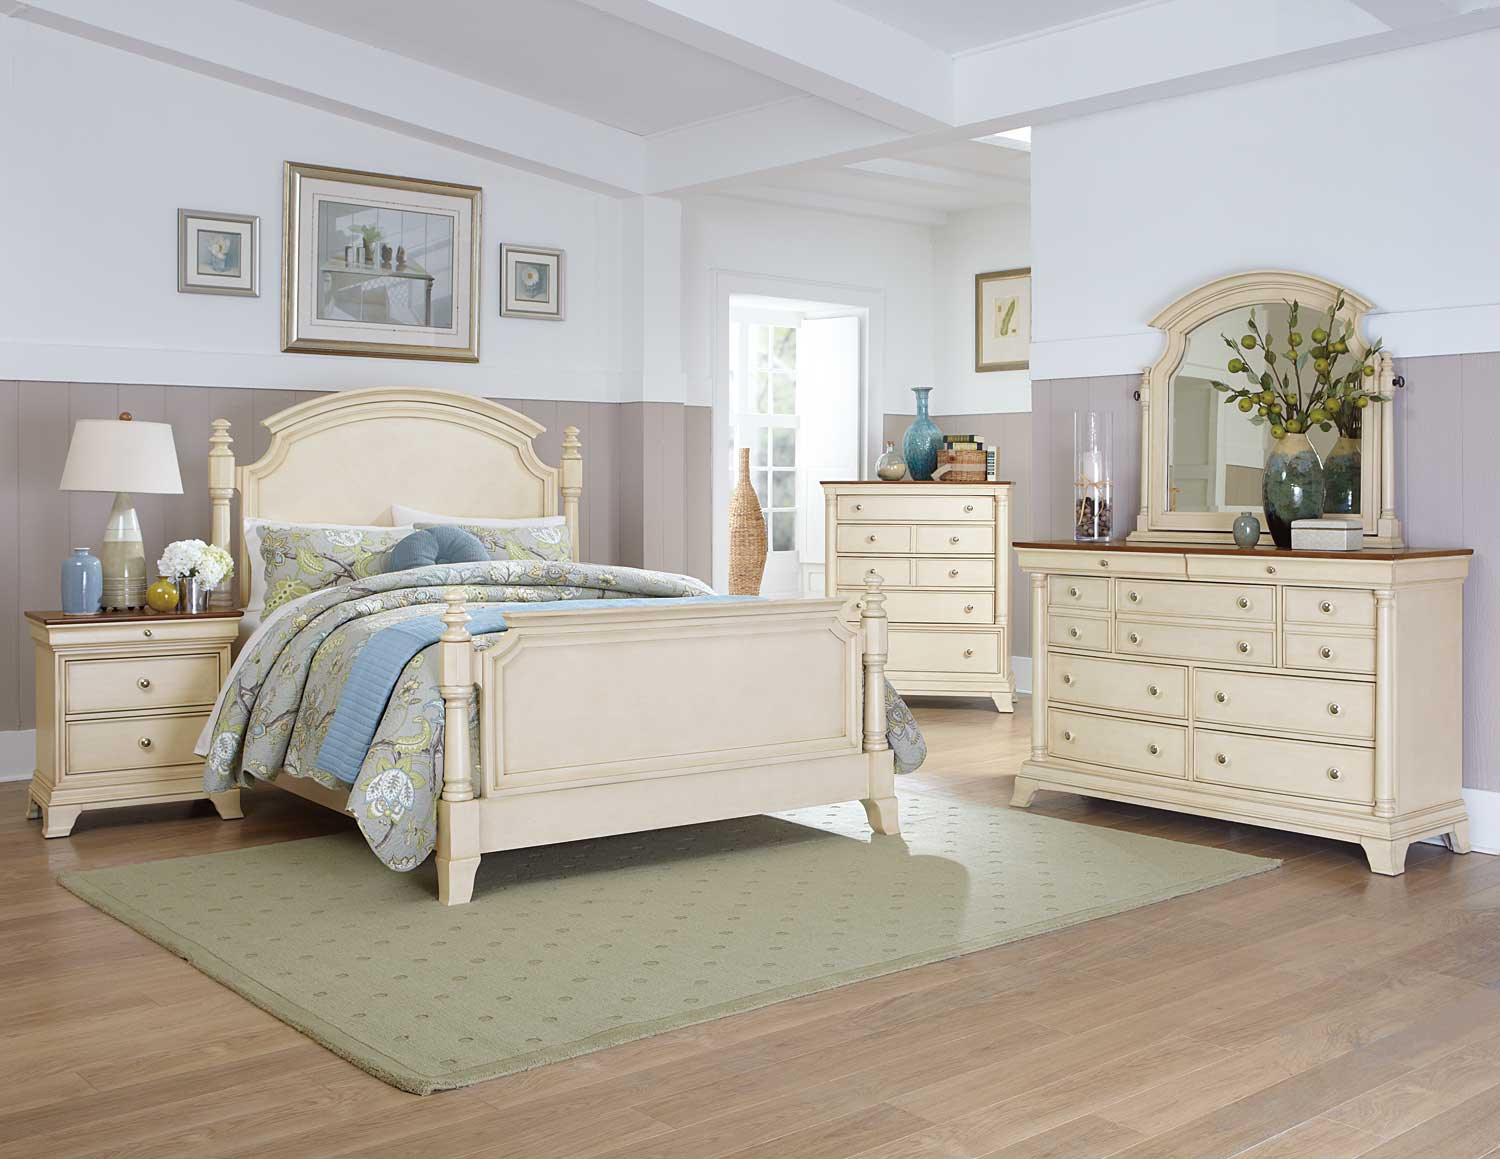 Cream Colored Bunk Beds Homelegance Inglewood Ii Bedroom Set White B1402w Bed